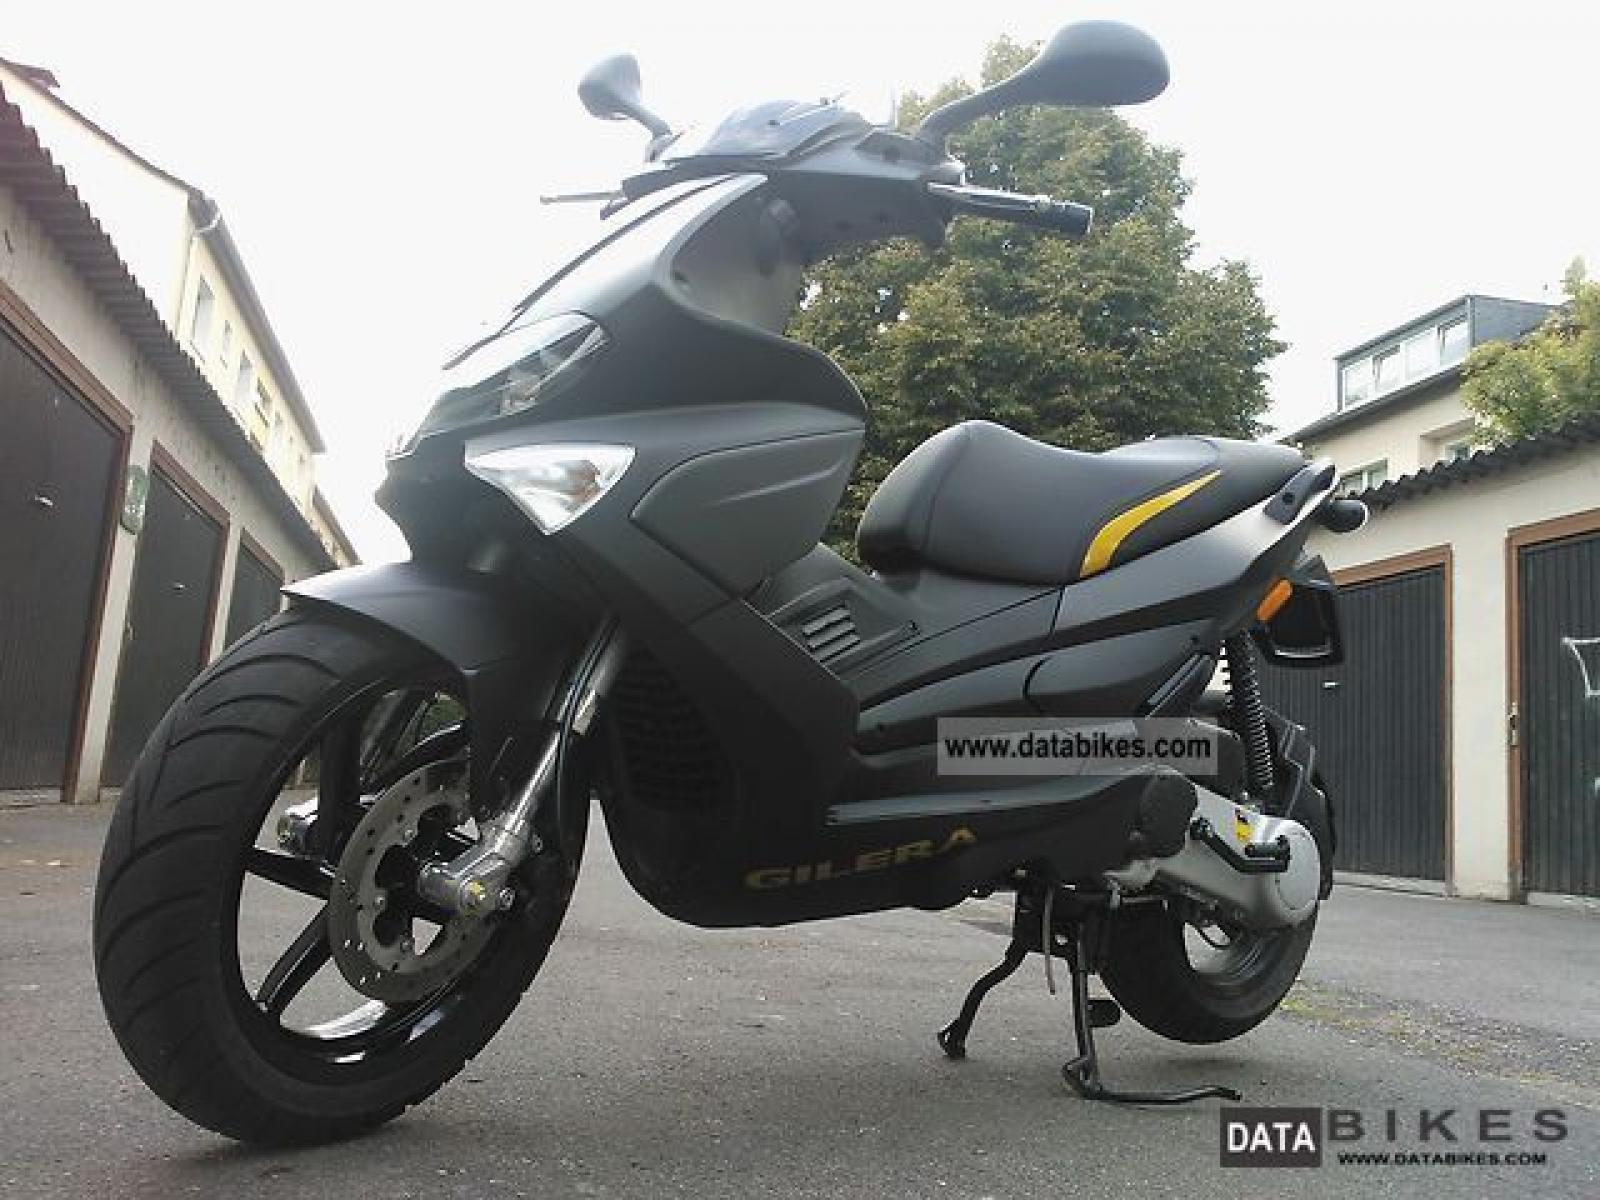 Gilera Runner 125 Black Soul 2015 images #74478